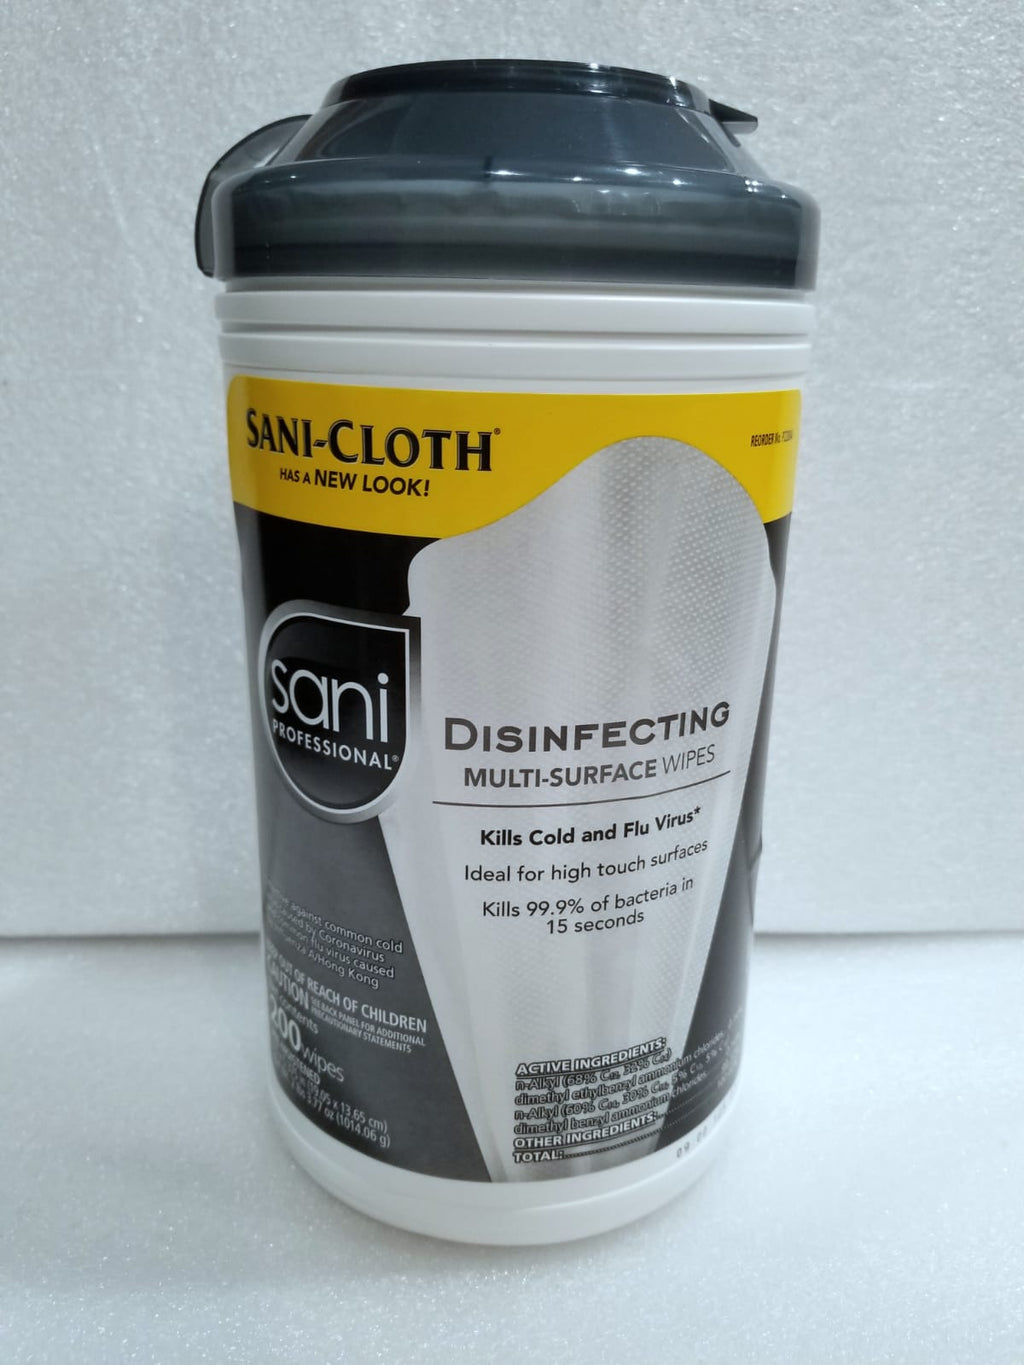 Multi-Surface Wipes Disinfecting (Sani Professional)